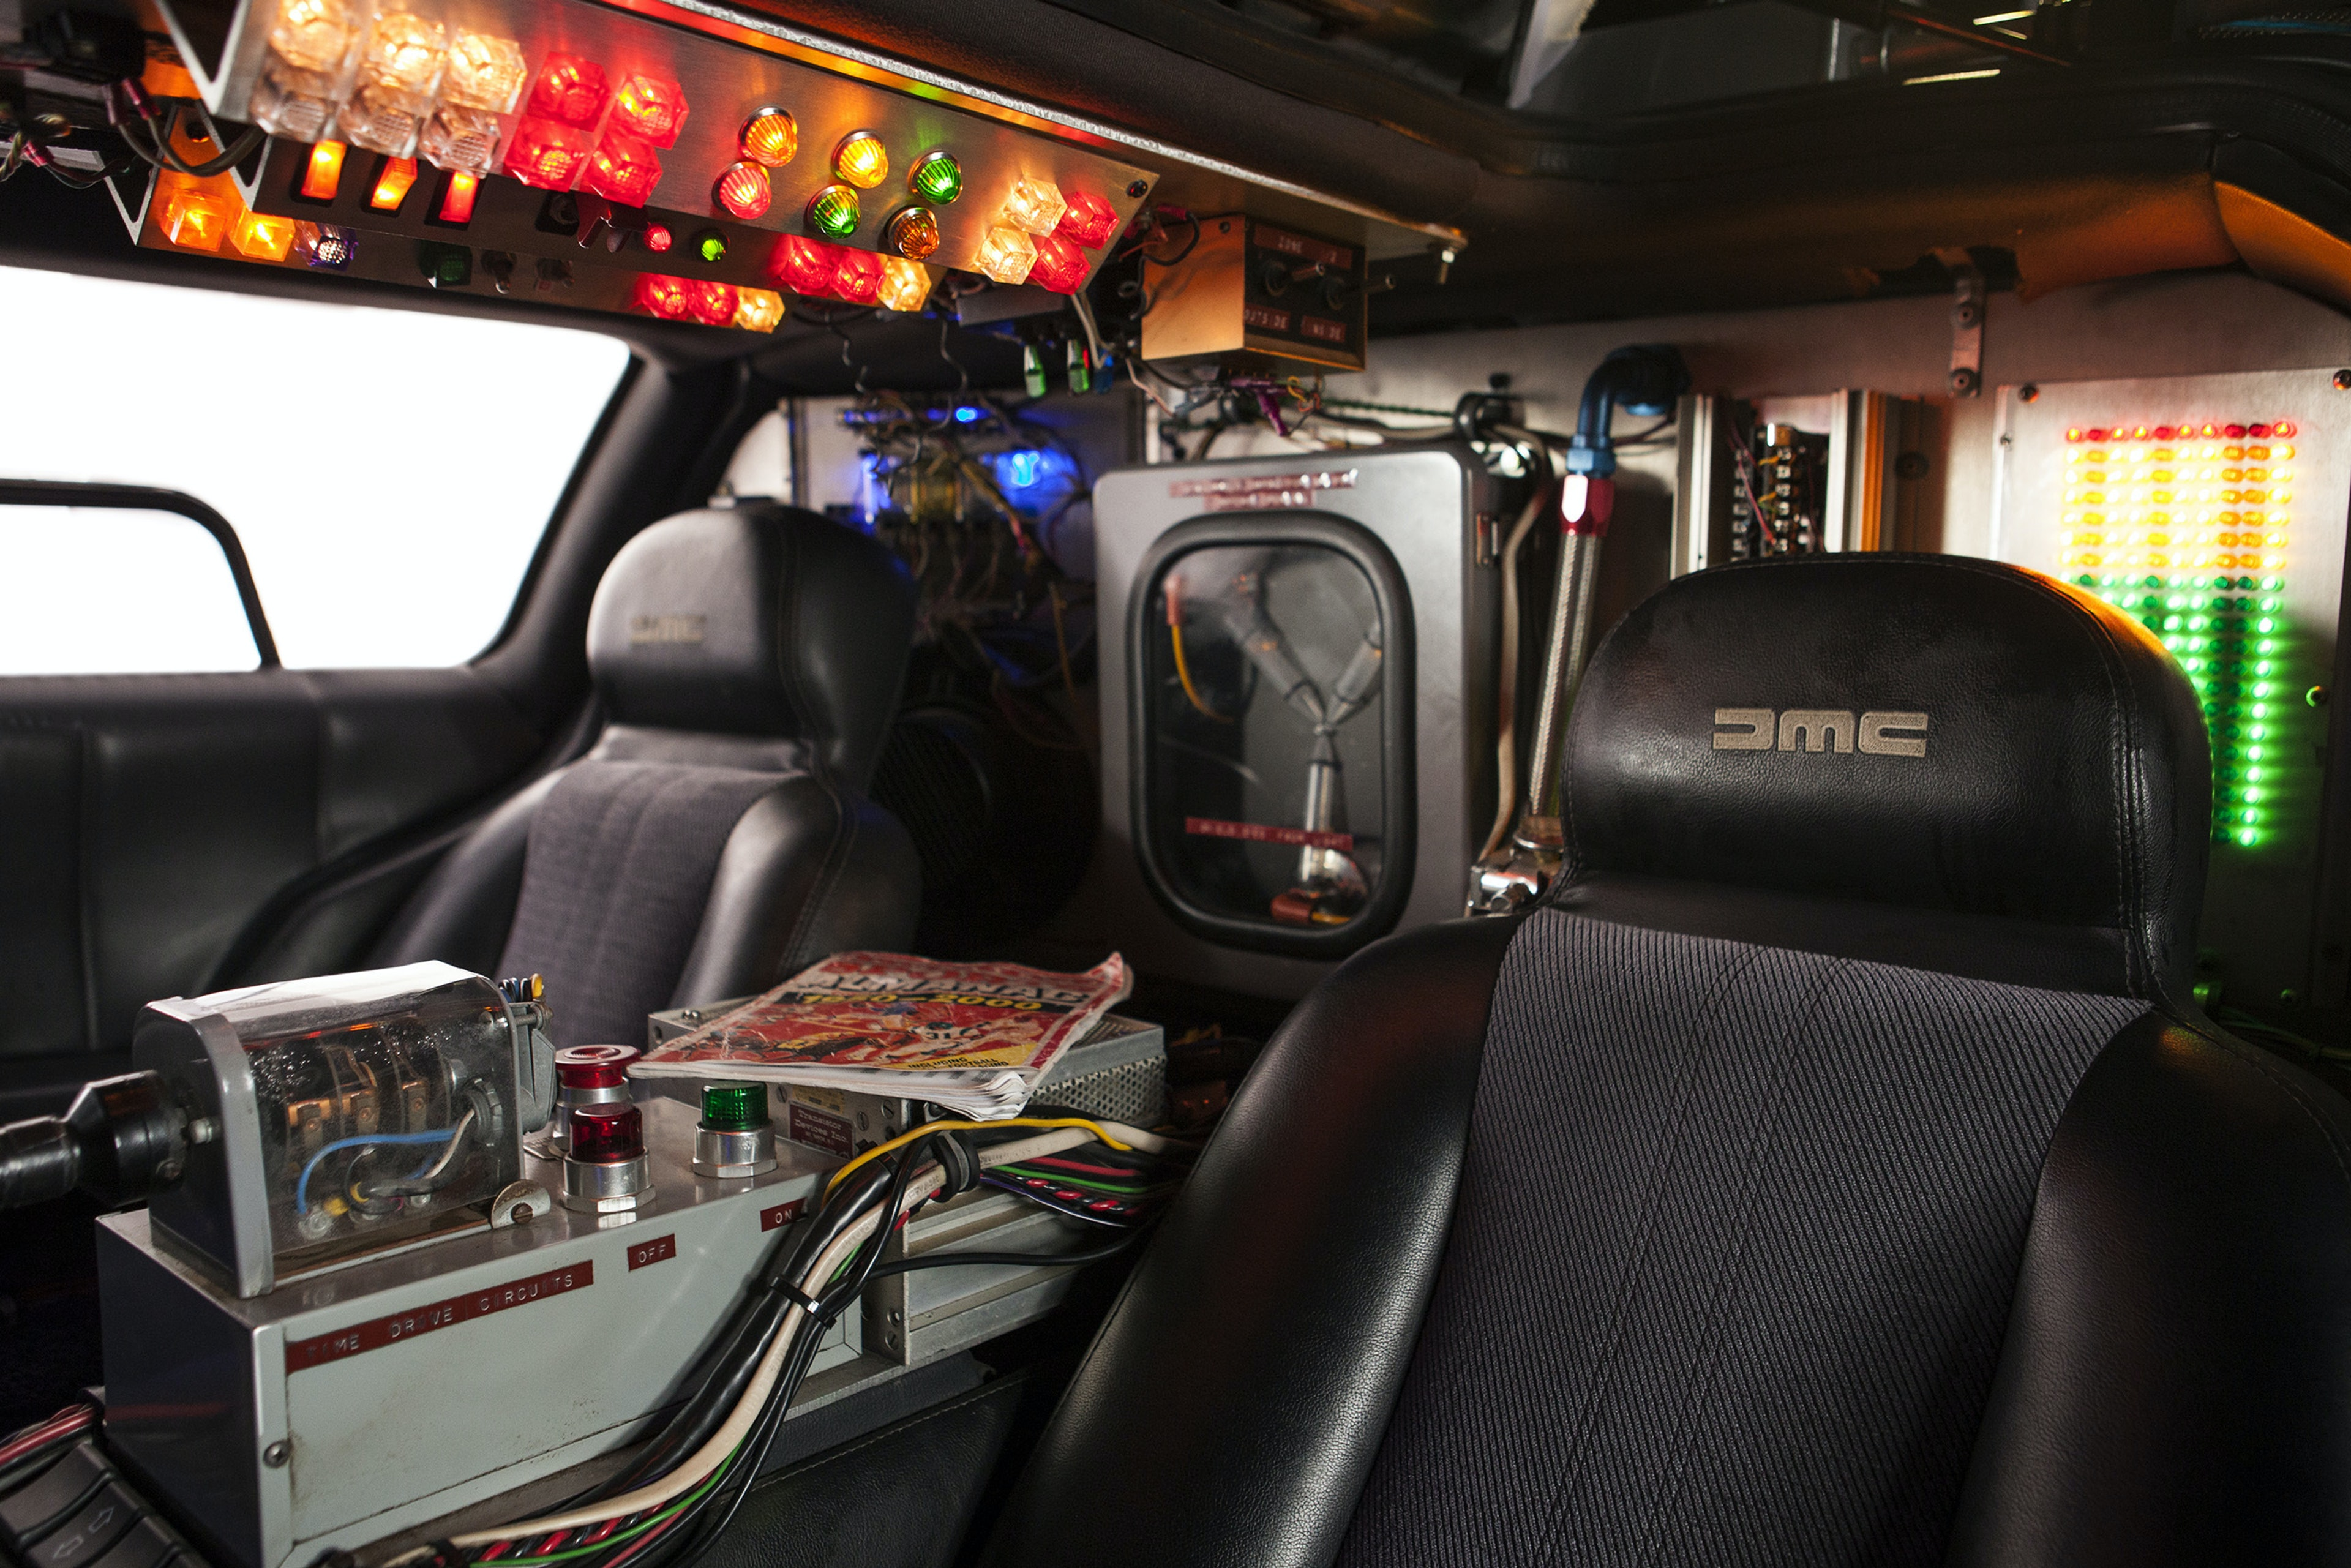 The interior of Doc's DeLorean. The electrical does look a little suspect.